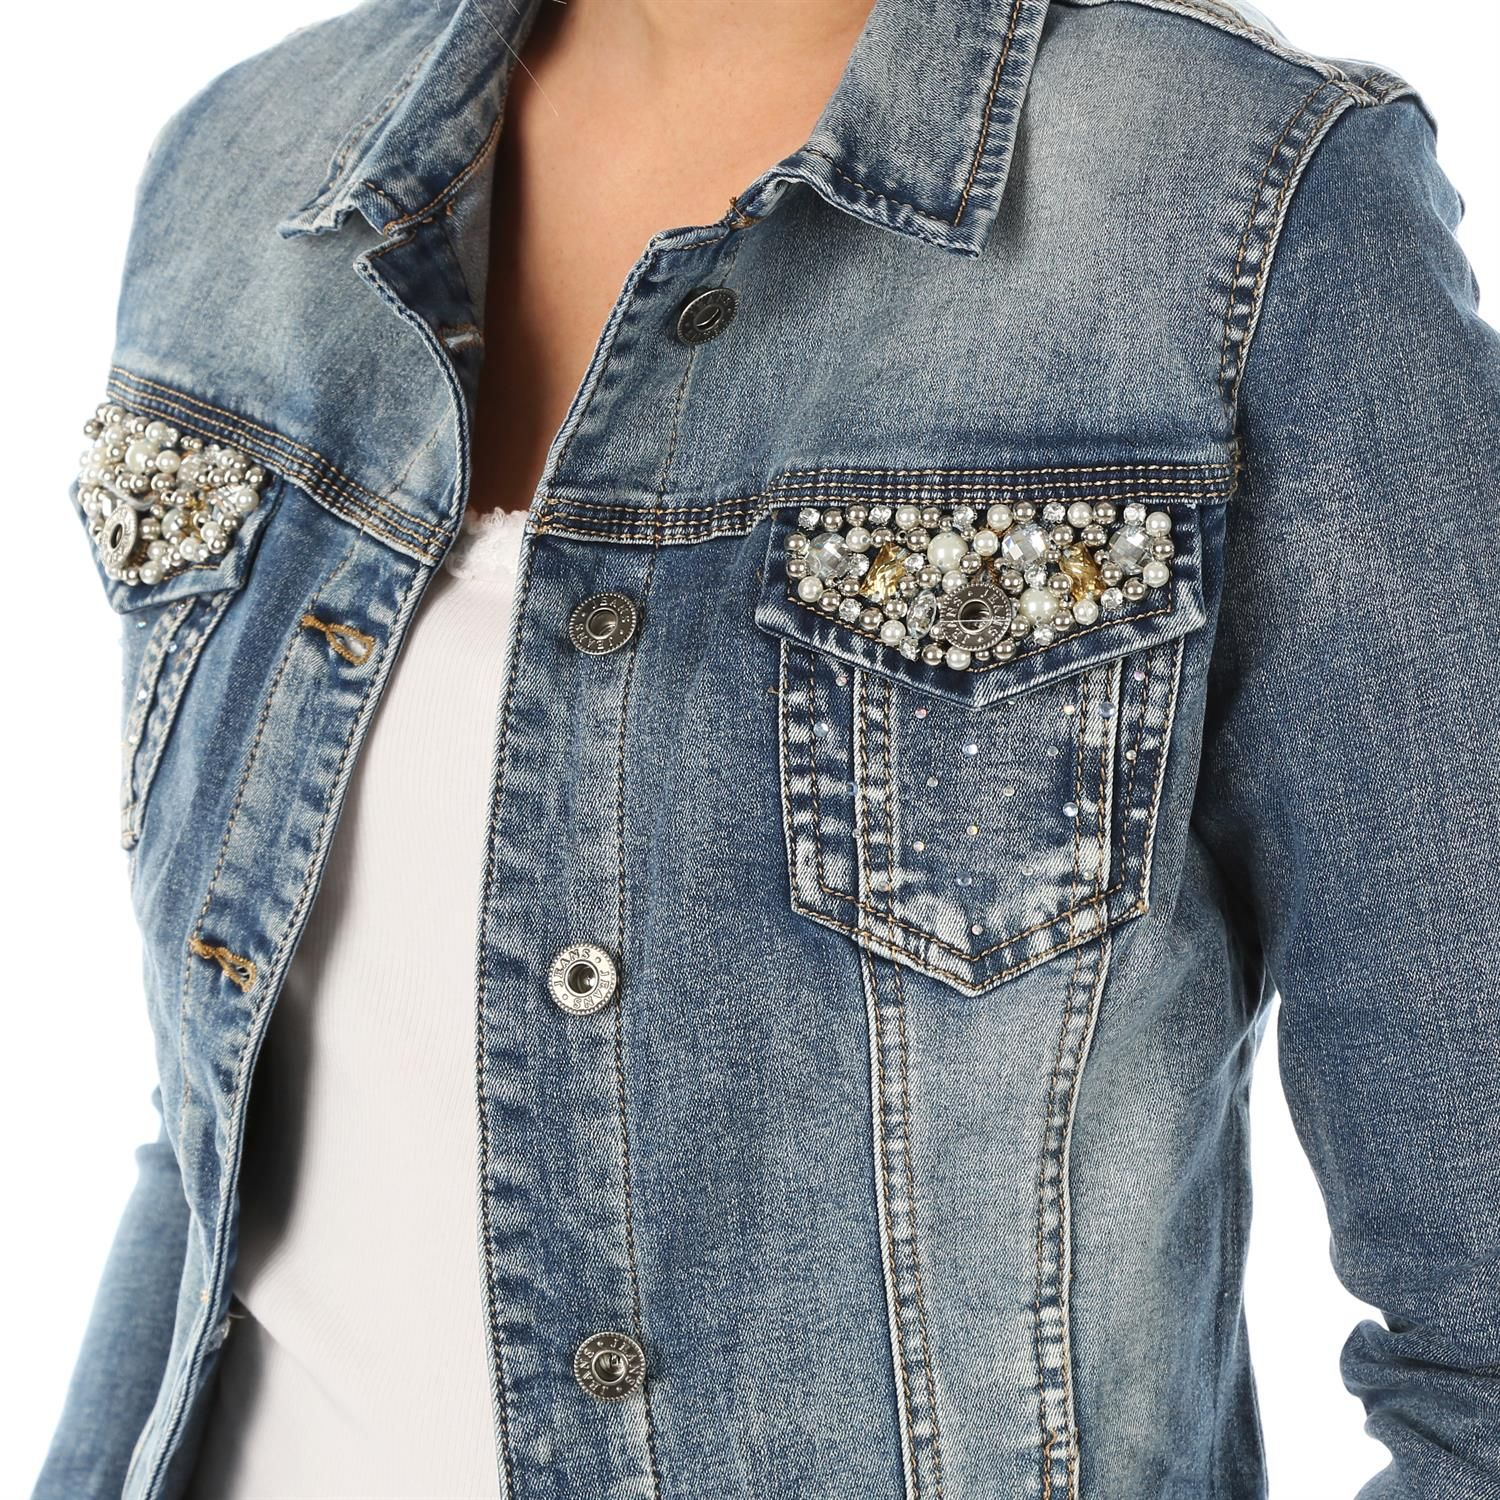 details zu kapalua damen jacke jeansjacke gr 36 blau denim nieten wie neu beading pinterest. Black Bedroom Furniture Sets. Home Design Ideas